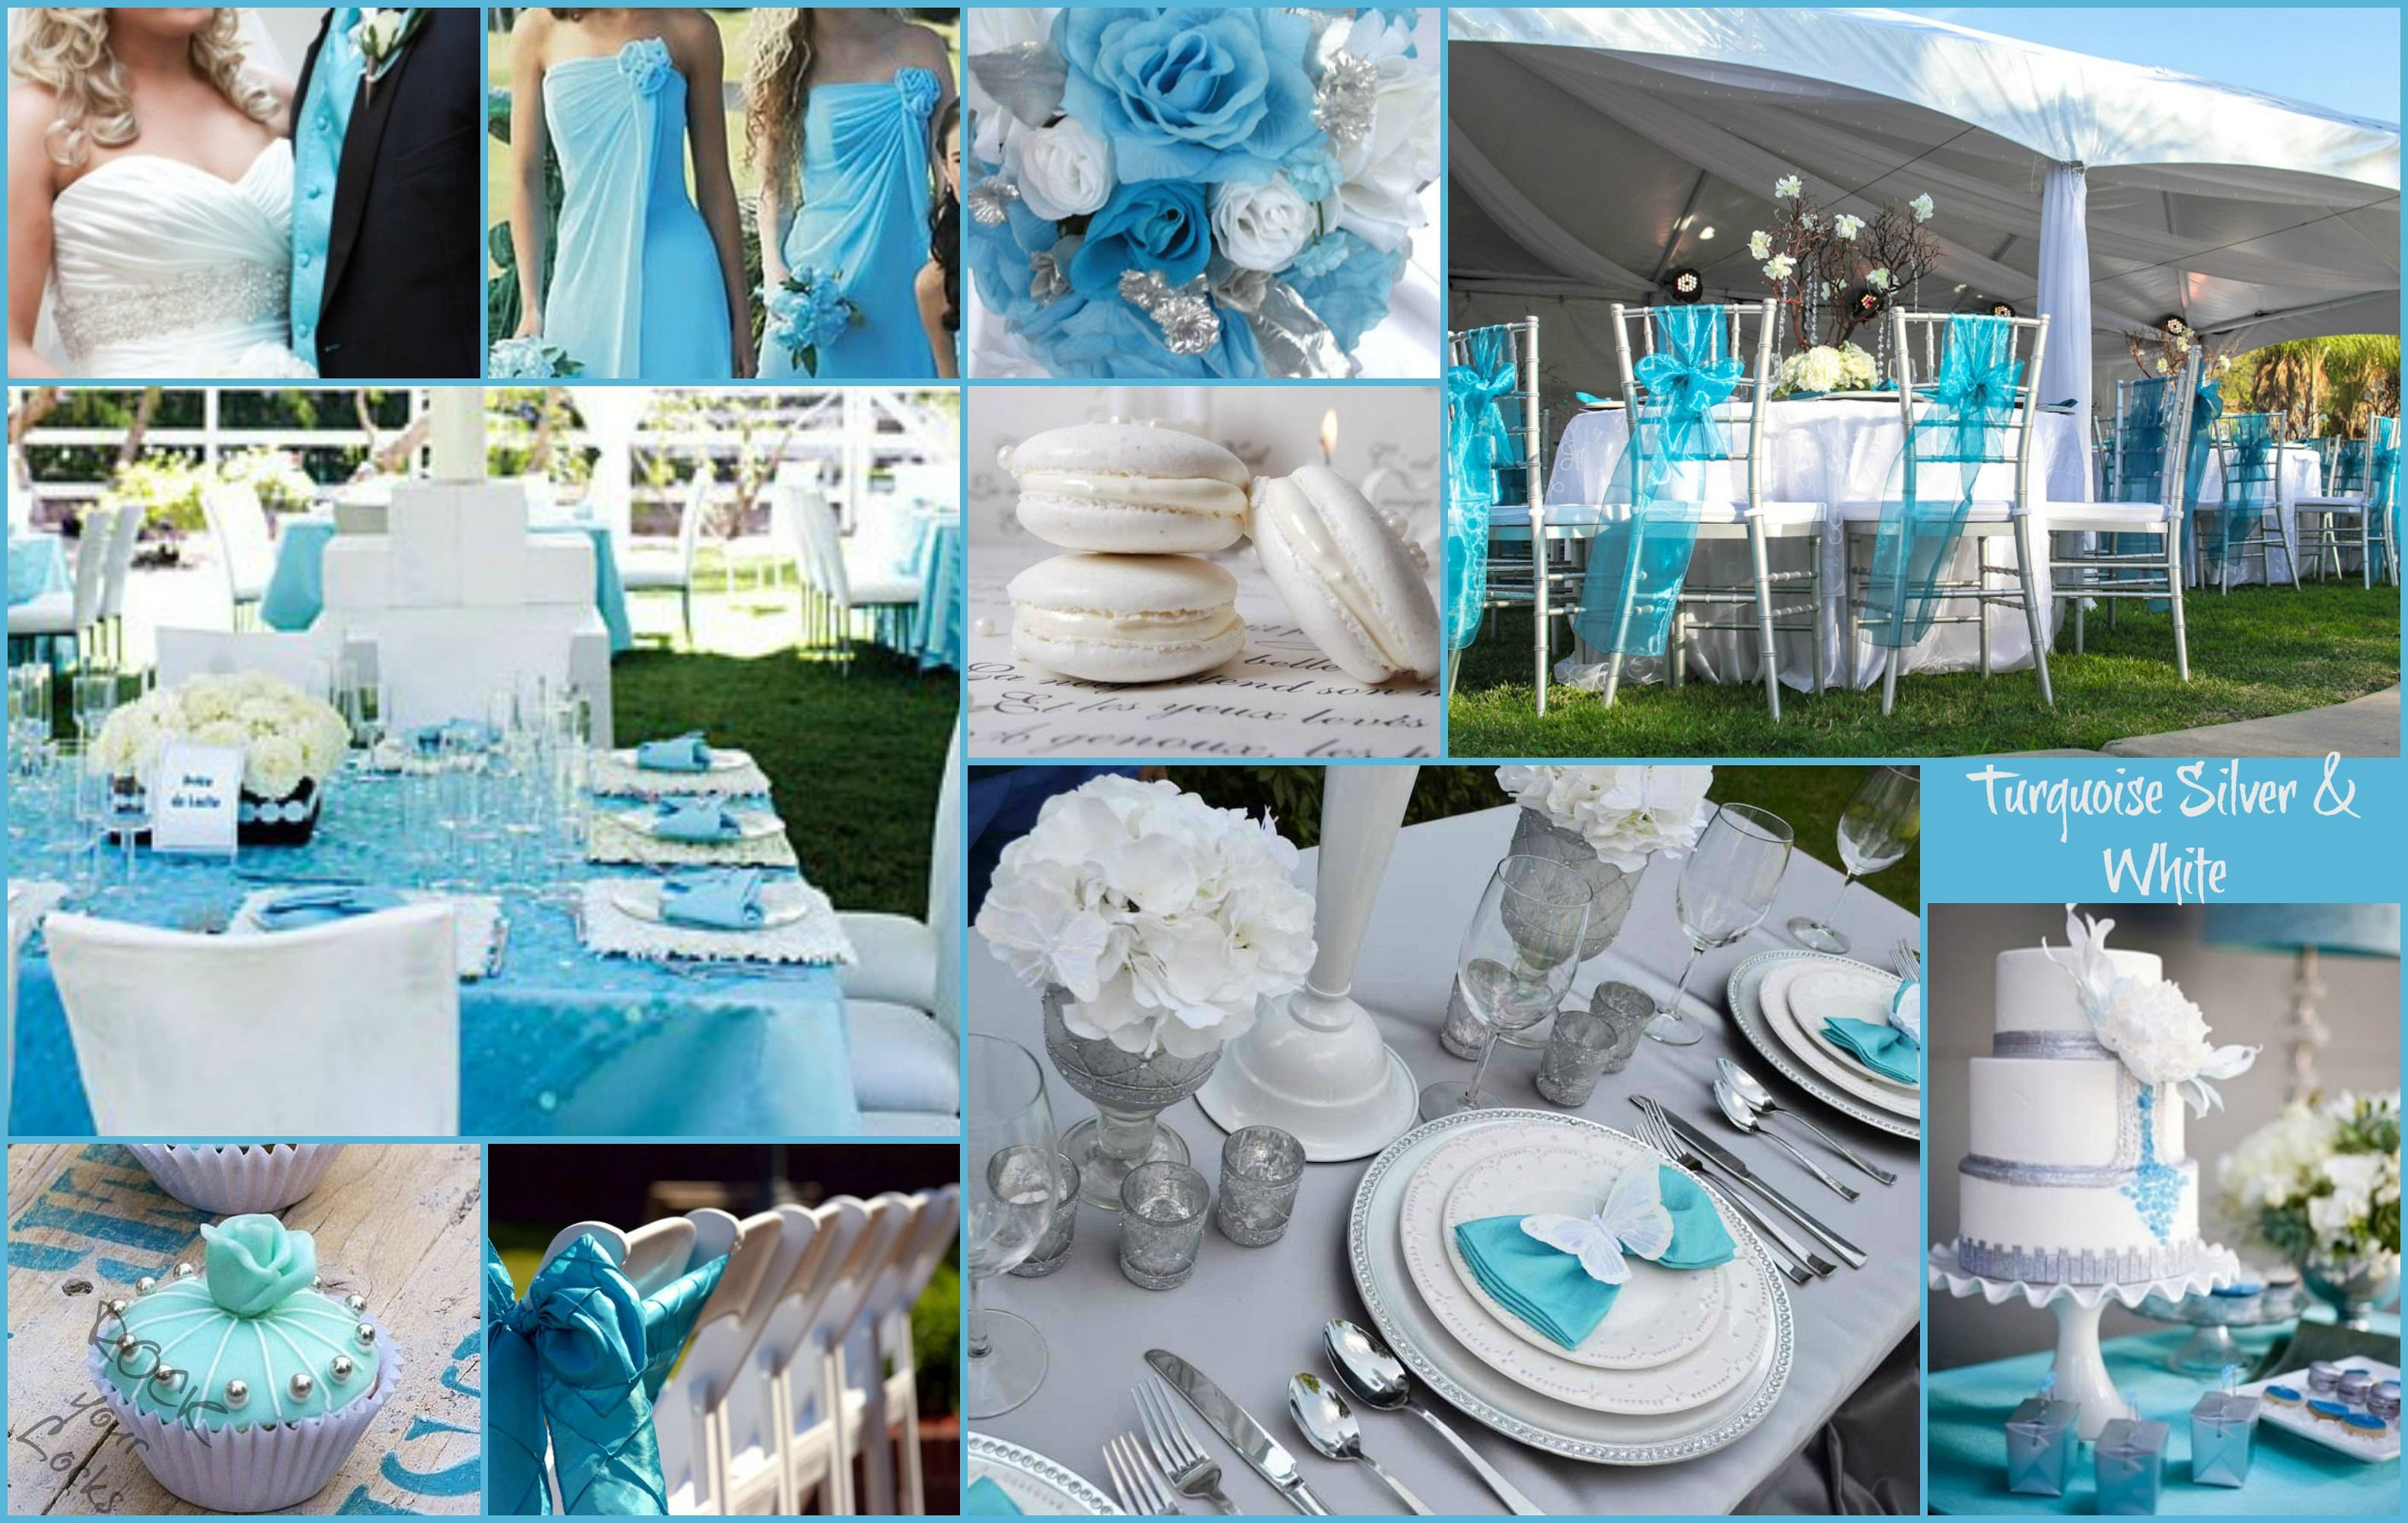 Turquoise White Silver Wedding Inspiration